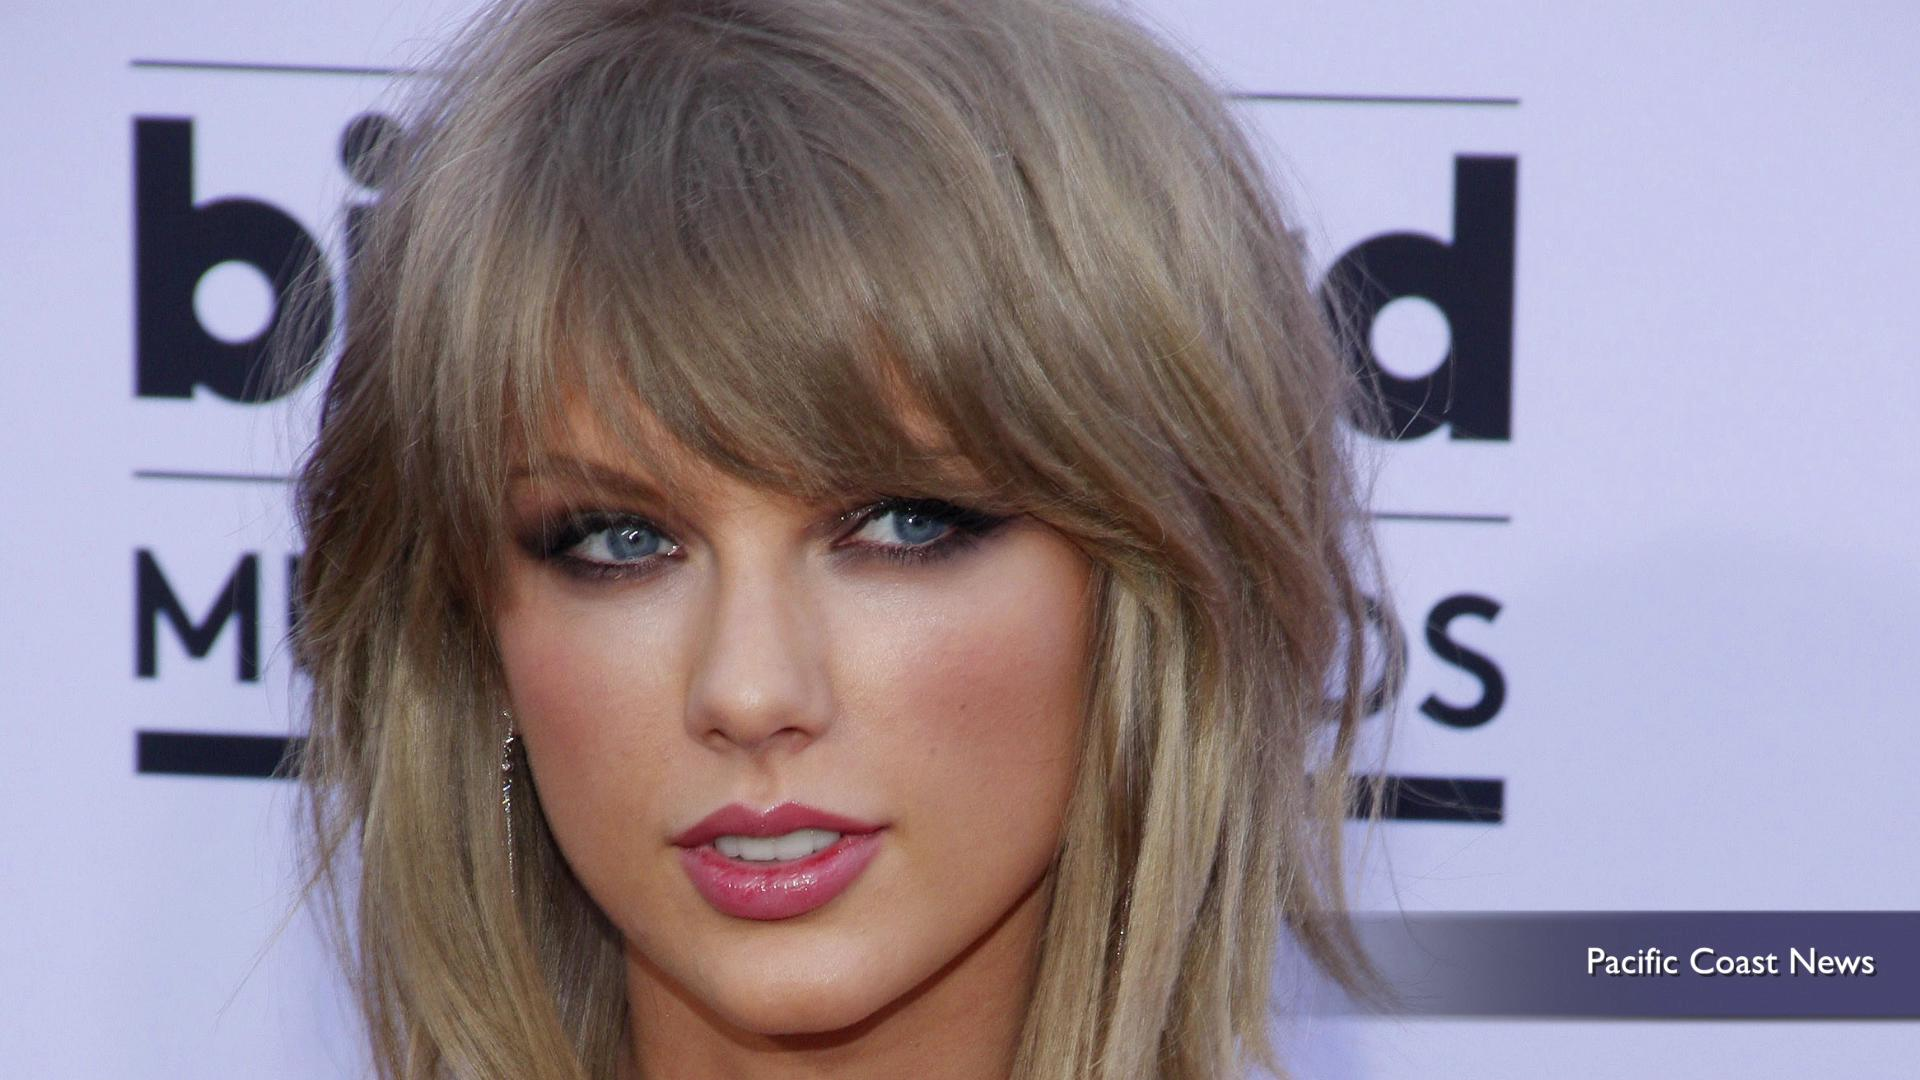 Teacher promises to cancel final exam if Taylor Swift calls